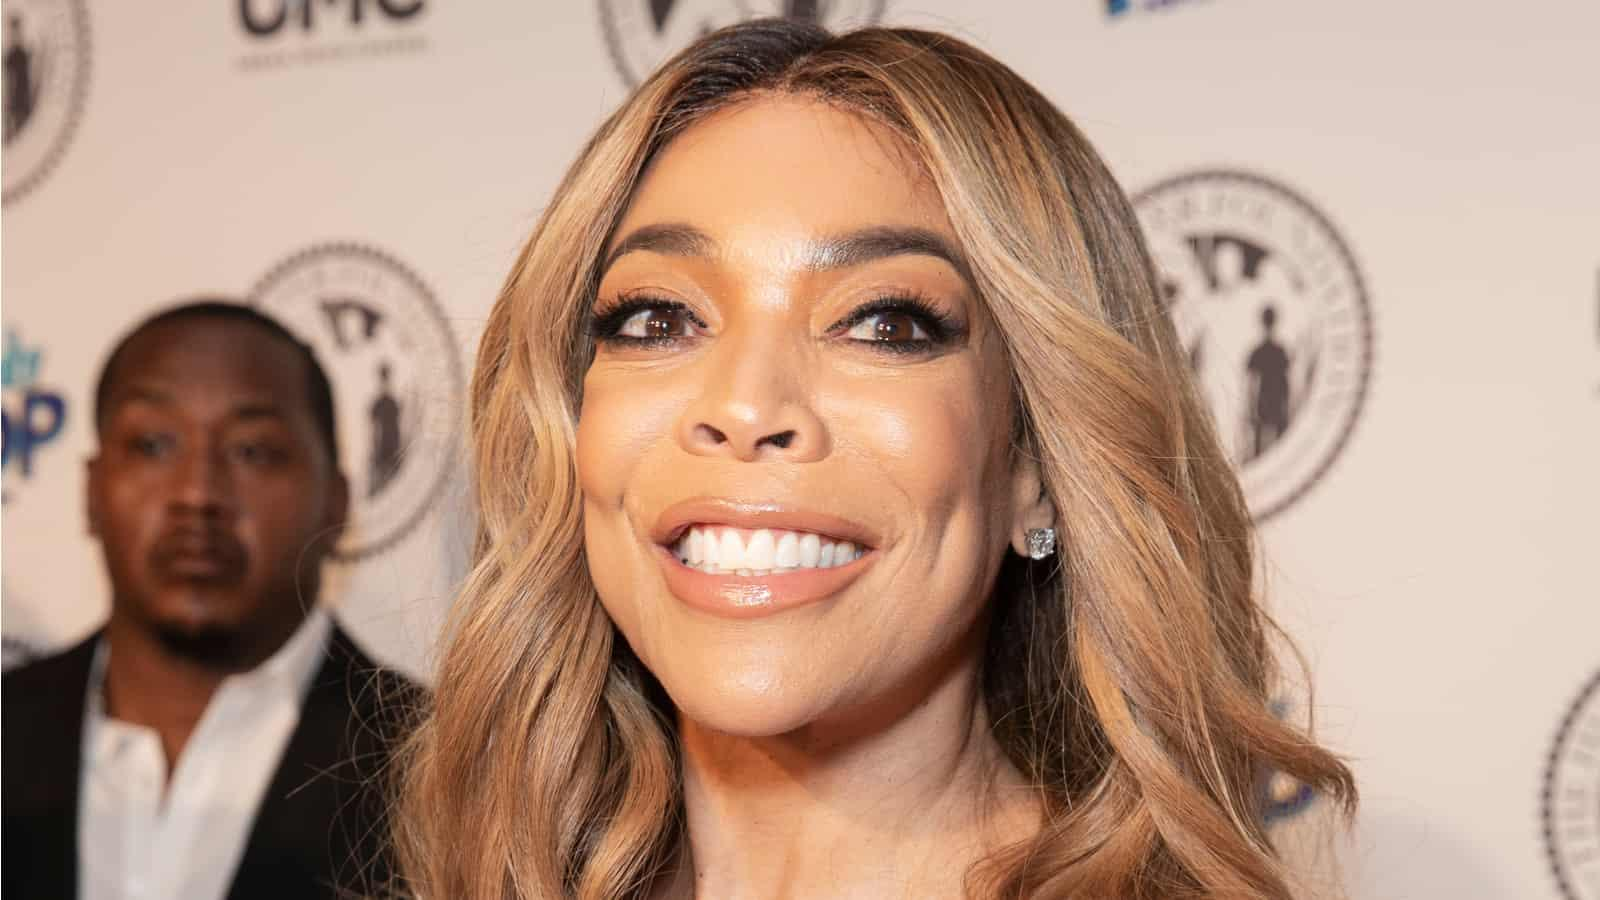 Wendy Williams Postpones Her Return To Her Talk Show - Here's Why!